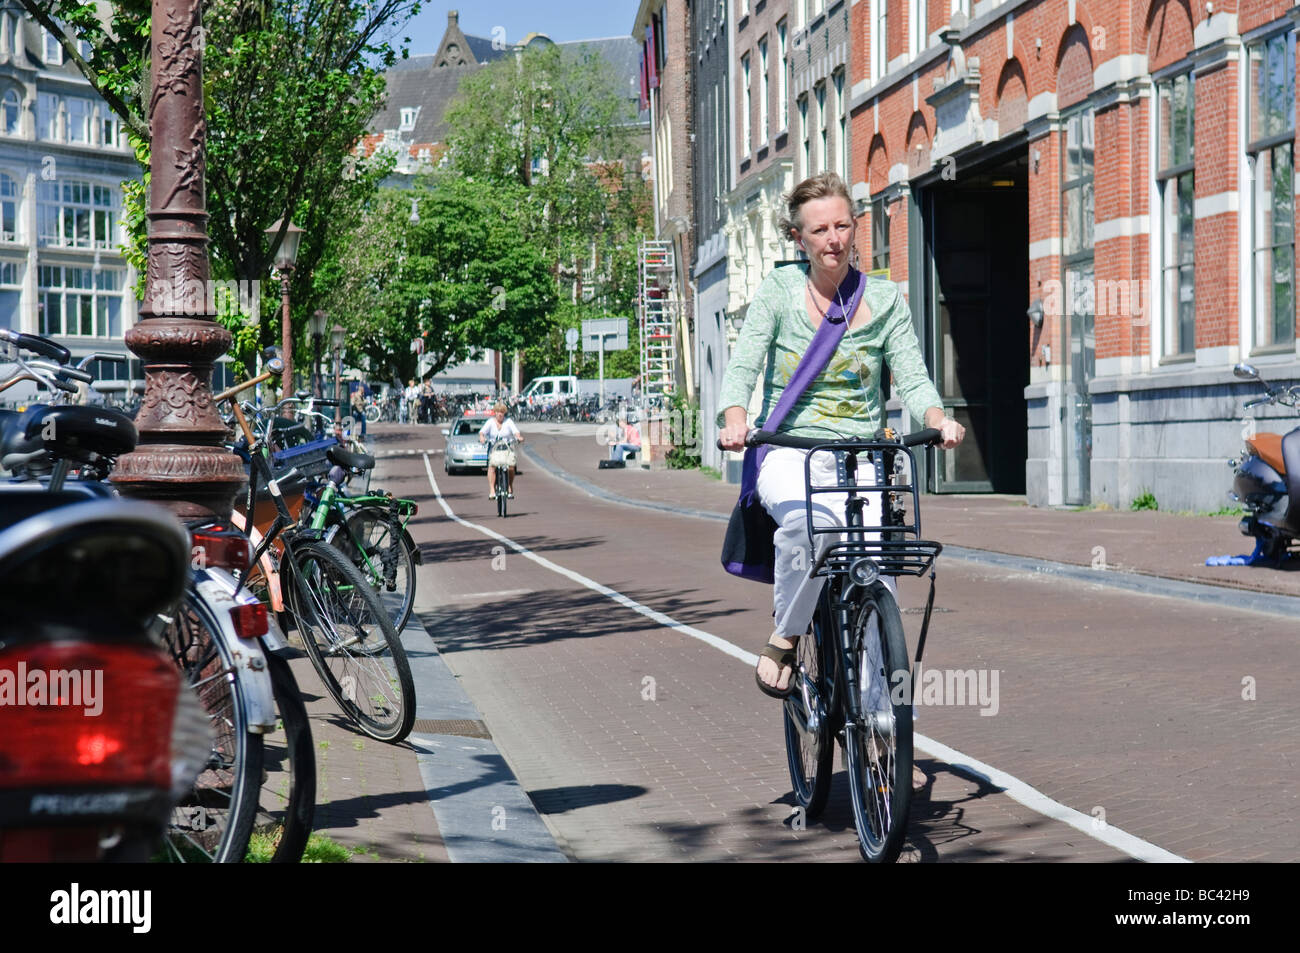 Lady cyclist on a street in Amsterdam - Stock Image